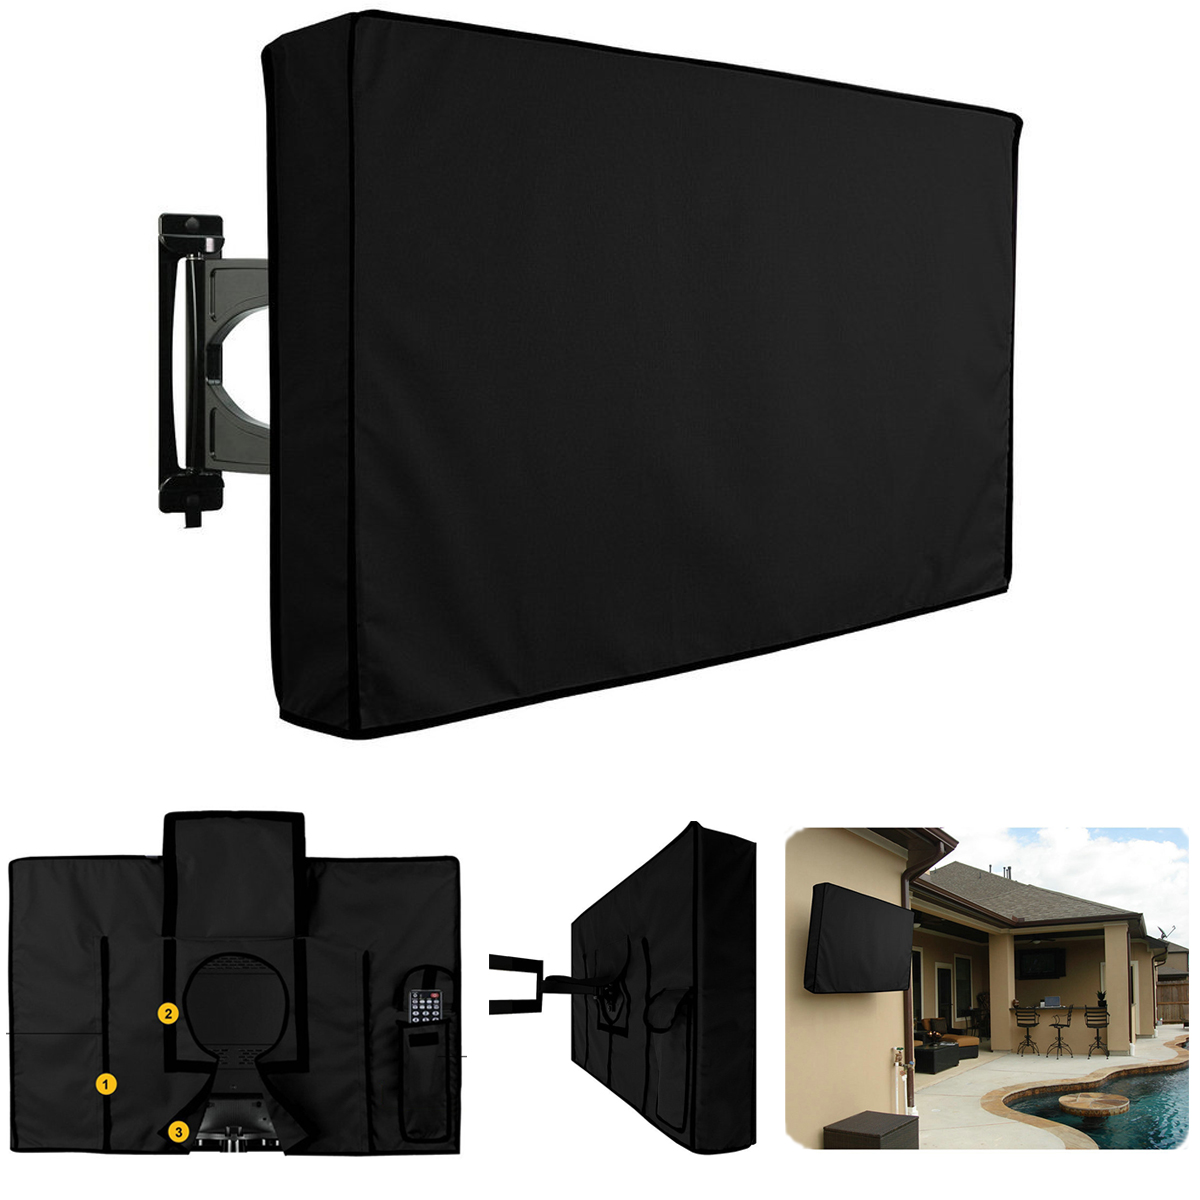 46'' Inch Waterproof Dust Resistant TV Cover Outdoor Dustproof LCD Television Protector Black